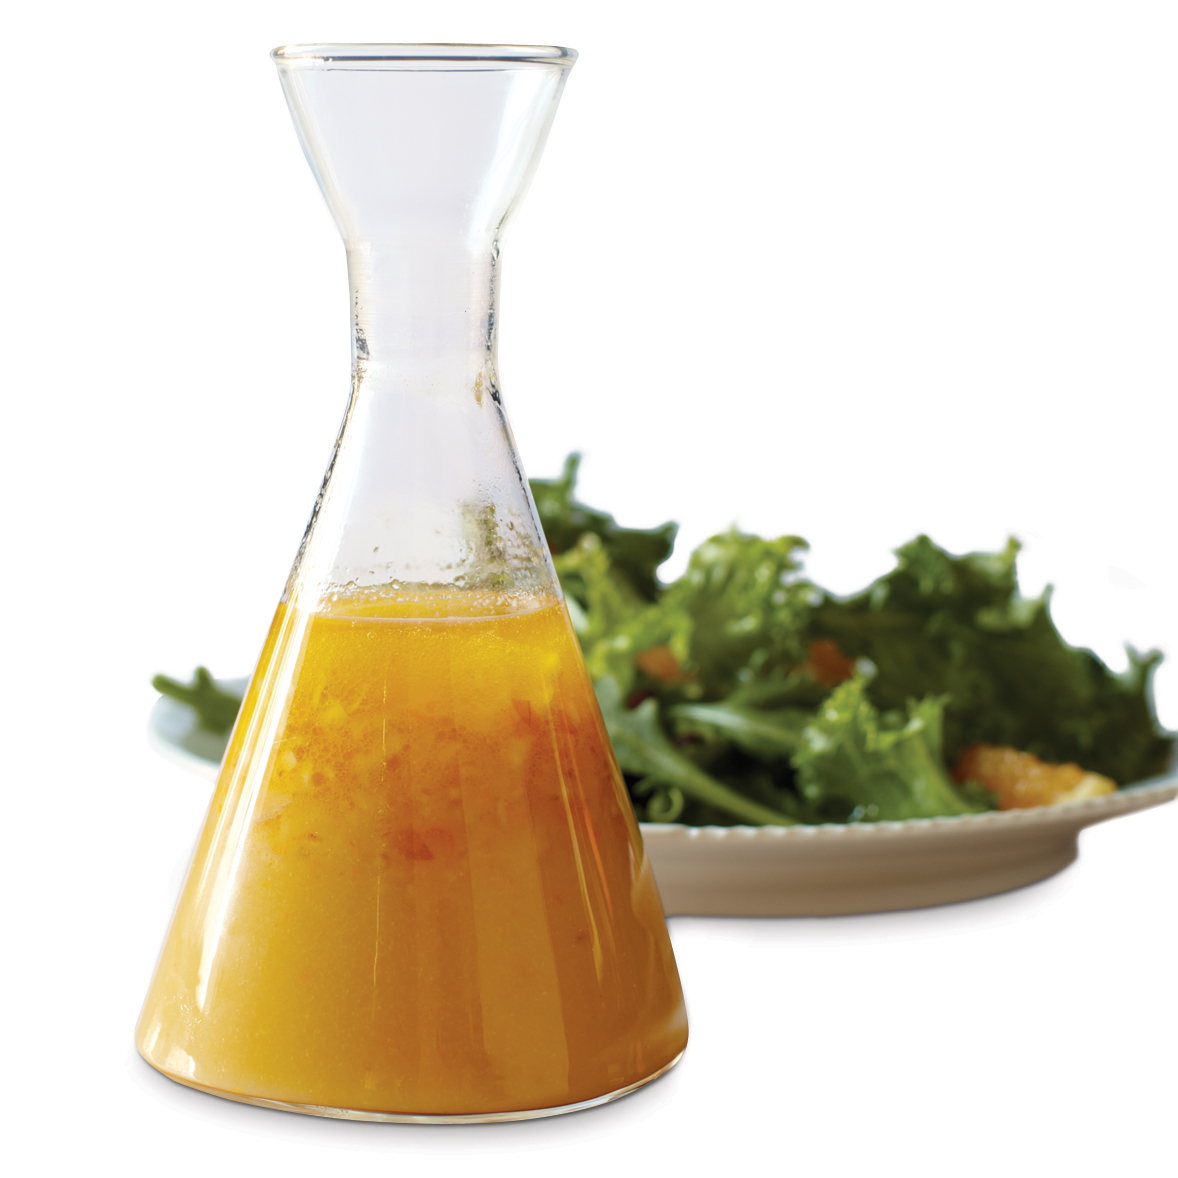 201106-r-orange-ale-vinaigrette.jpg